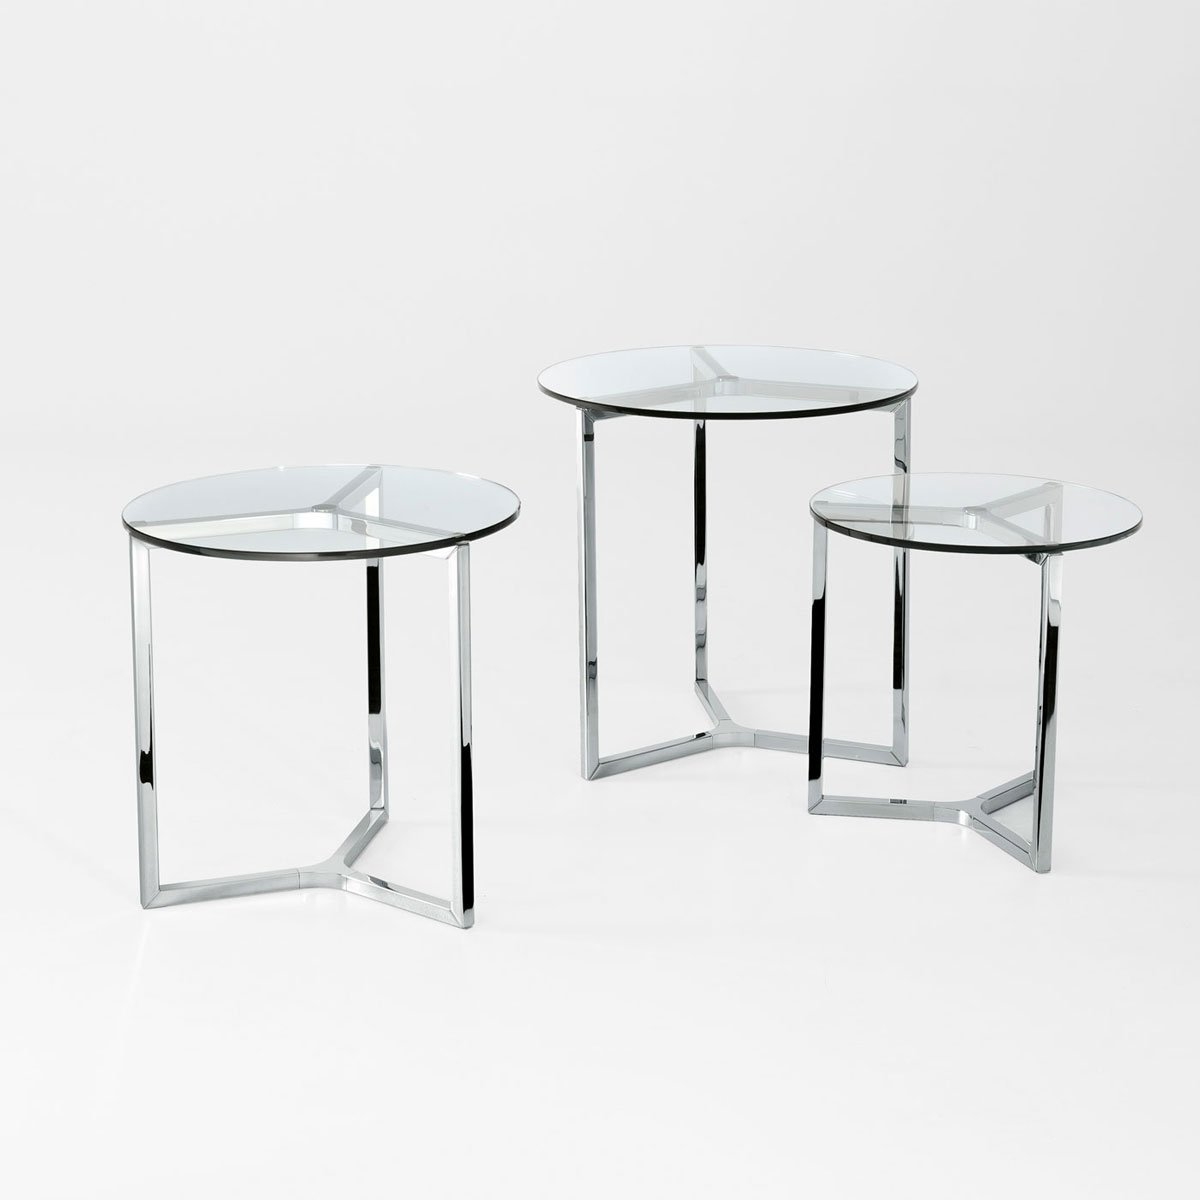 Raj 2 Glass And Metal Side Table By Gallotti Radice